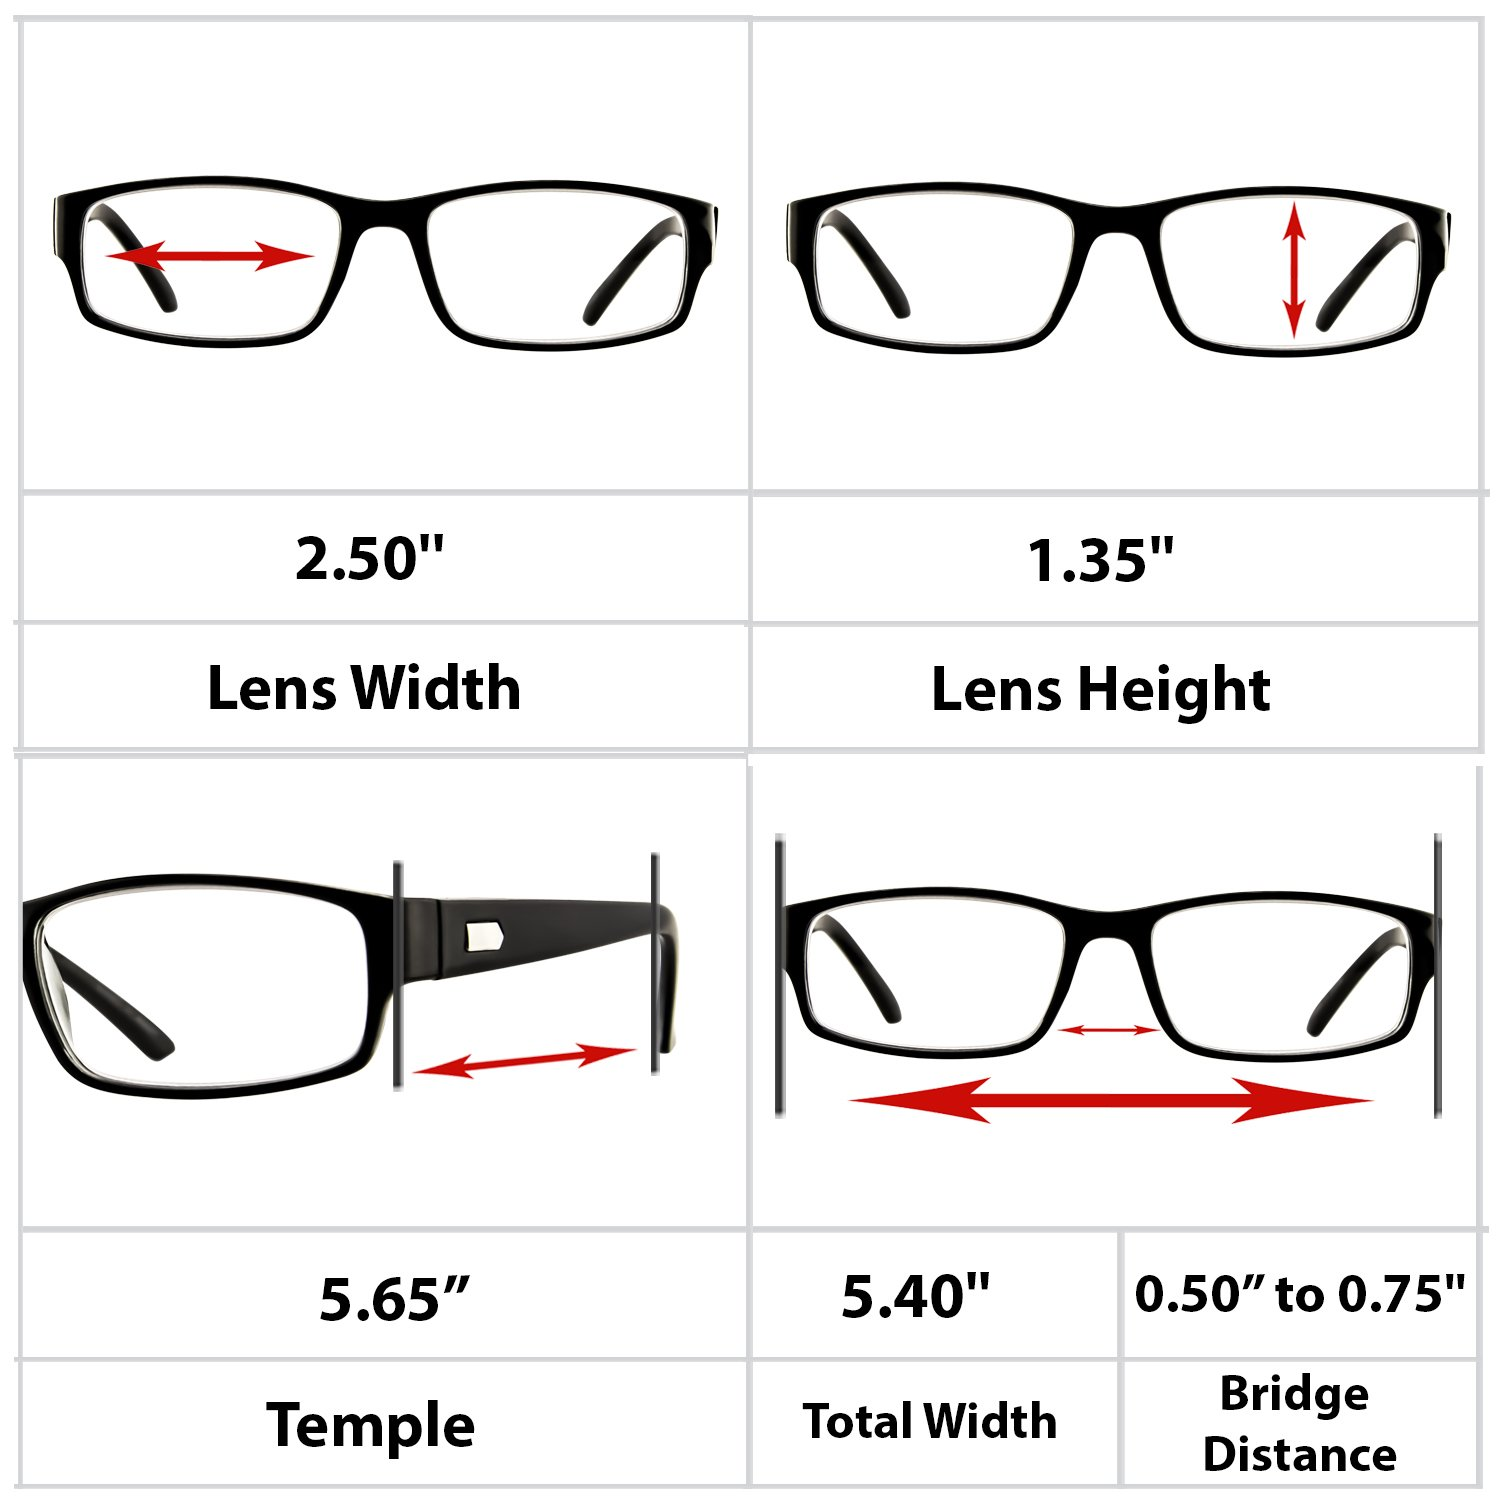 Reading Glasses 3 Pack Black Always Have a Professional Look, Crystal Clear Vision and Sure-Flex Comfort Spring Arms & Dura-Tight Screws 100% Guarantee +2.50 by TruVision Readers (Image #9)